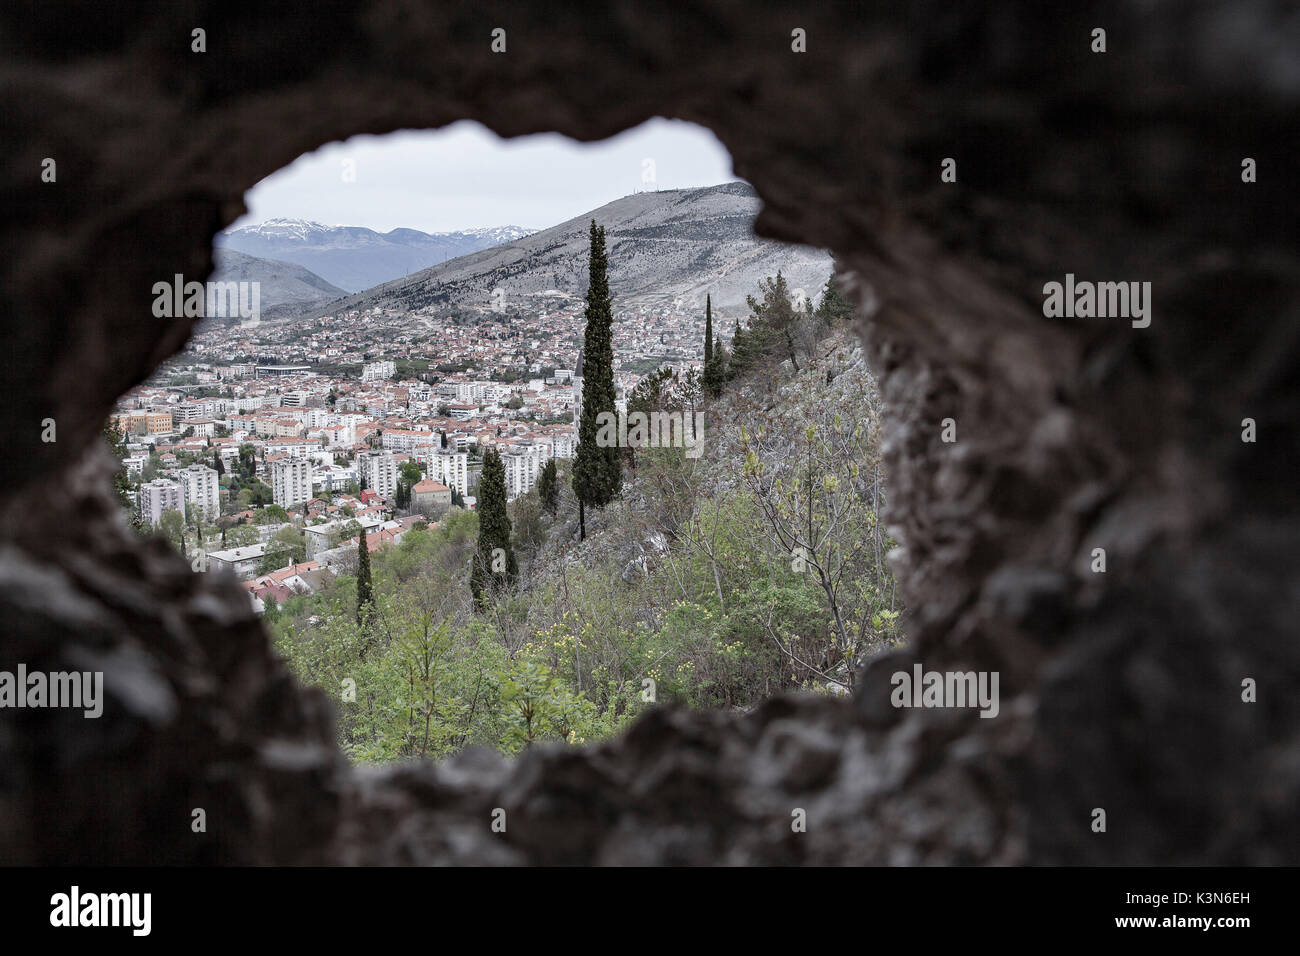 Eastern Europe, Bosnia and Herzegovina. Mostar view from the hole of a bomb of the war in the Balkans - Stock Image